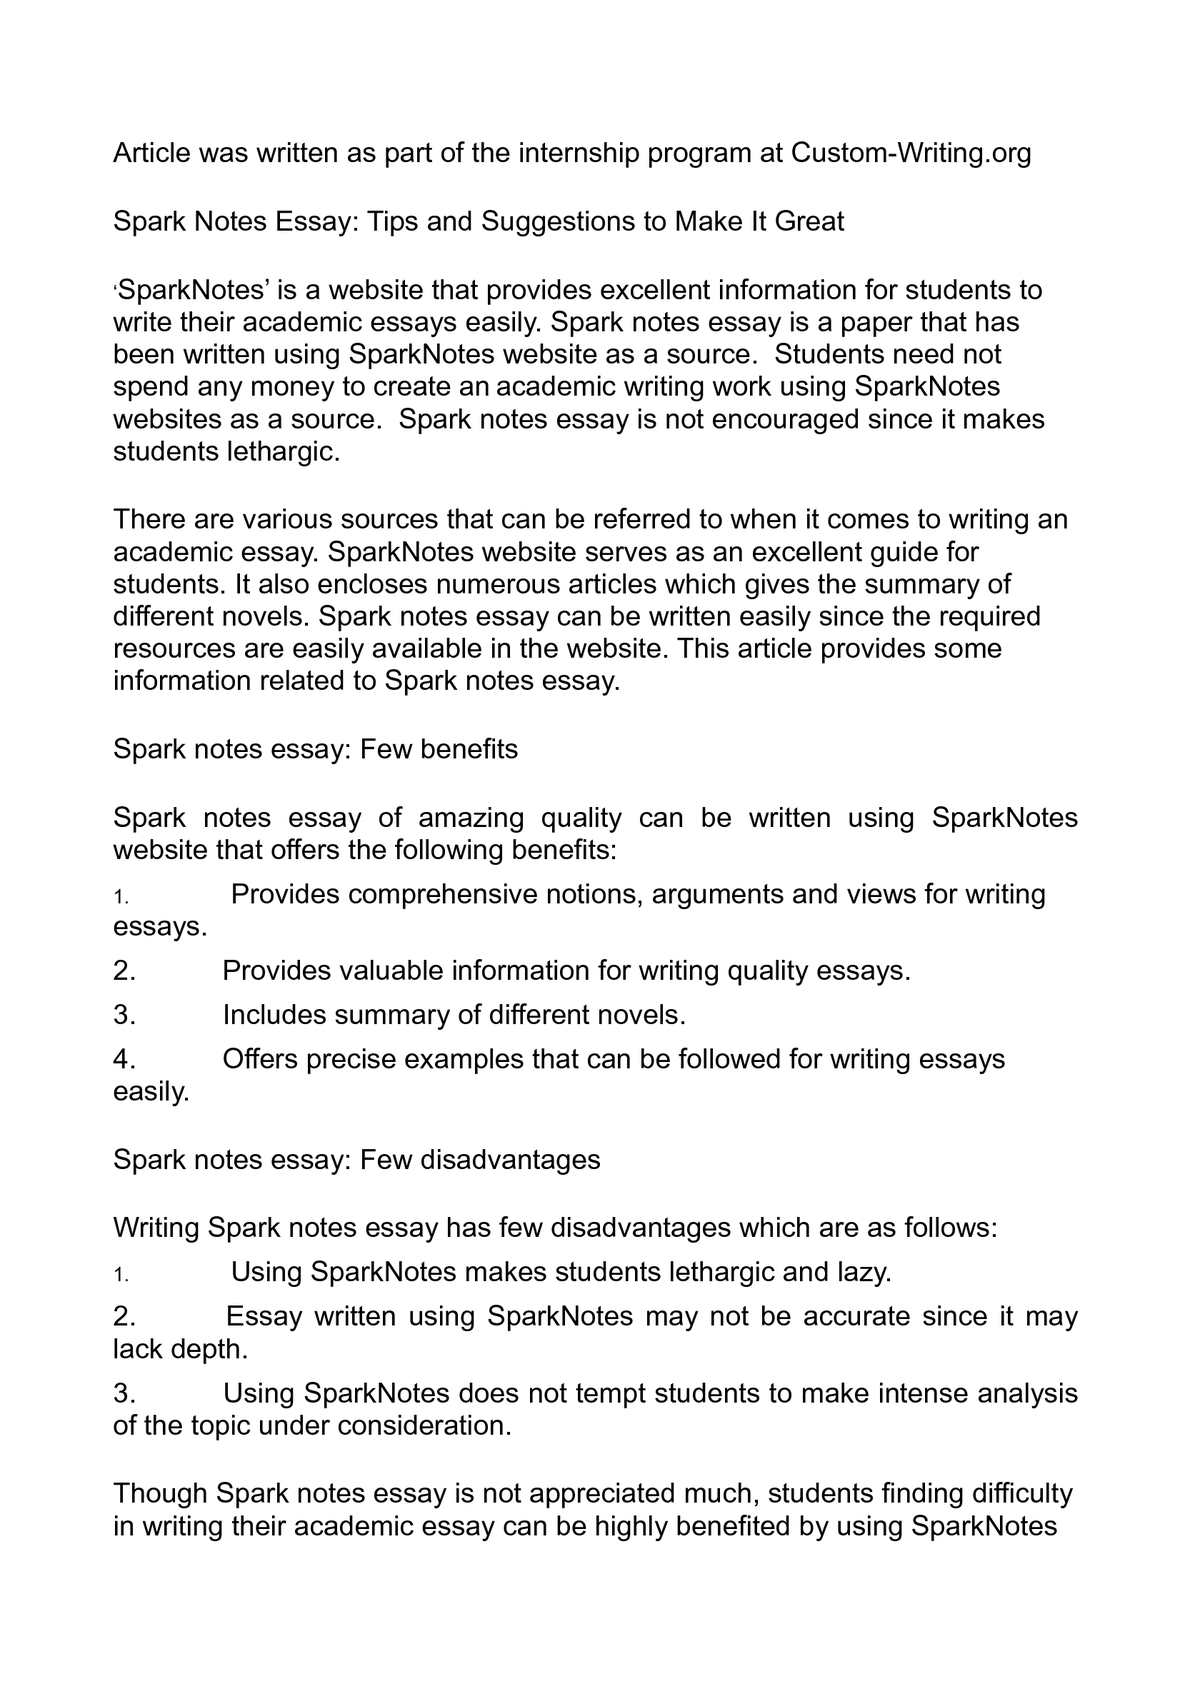 Business Essay Examples  Essay About Good Health also Reflection Paper Example Essays Calamo  Spark Notes Essay Tips And Suggestions To Make It Great Thesis Statement Descriptive Essay